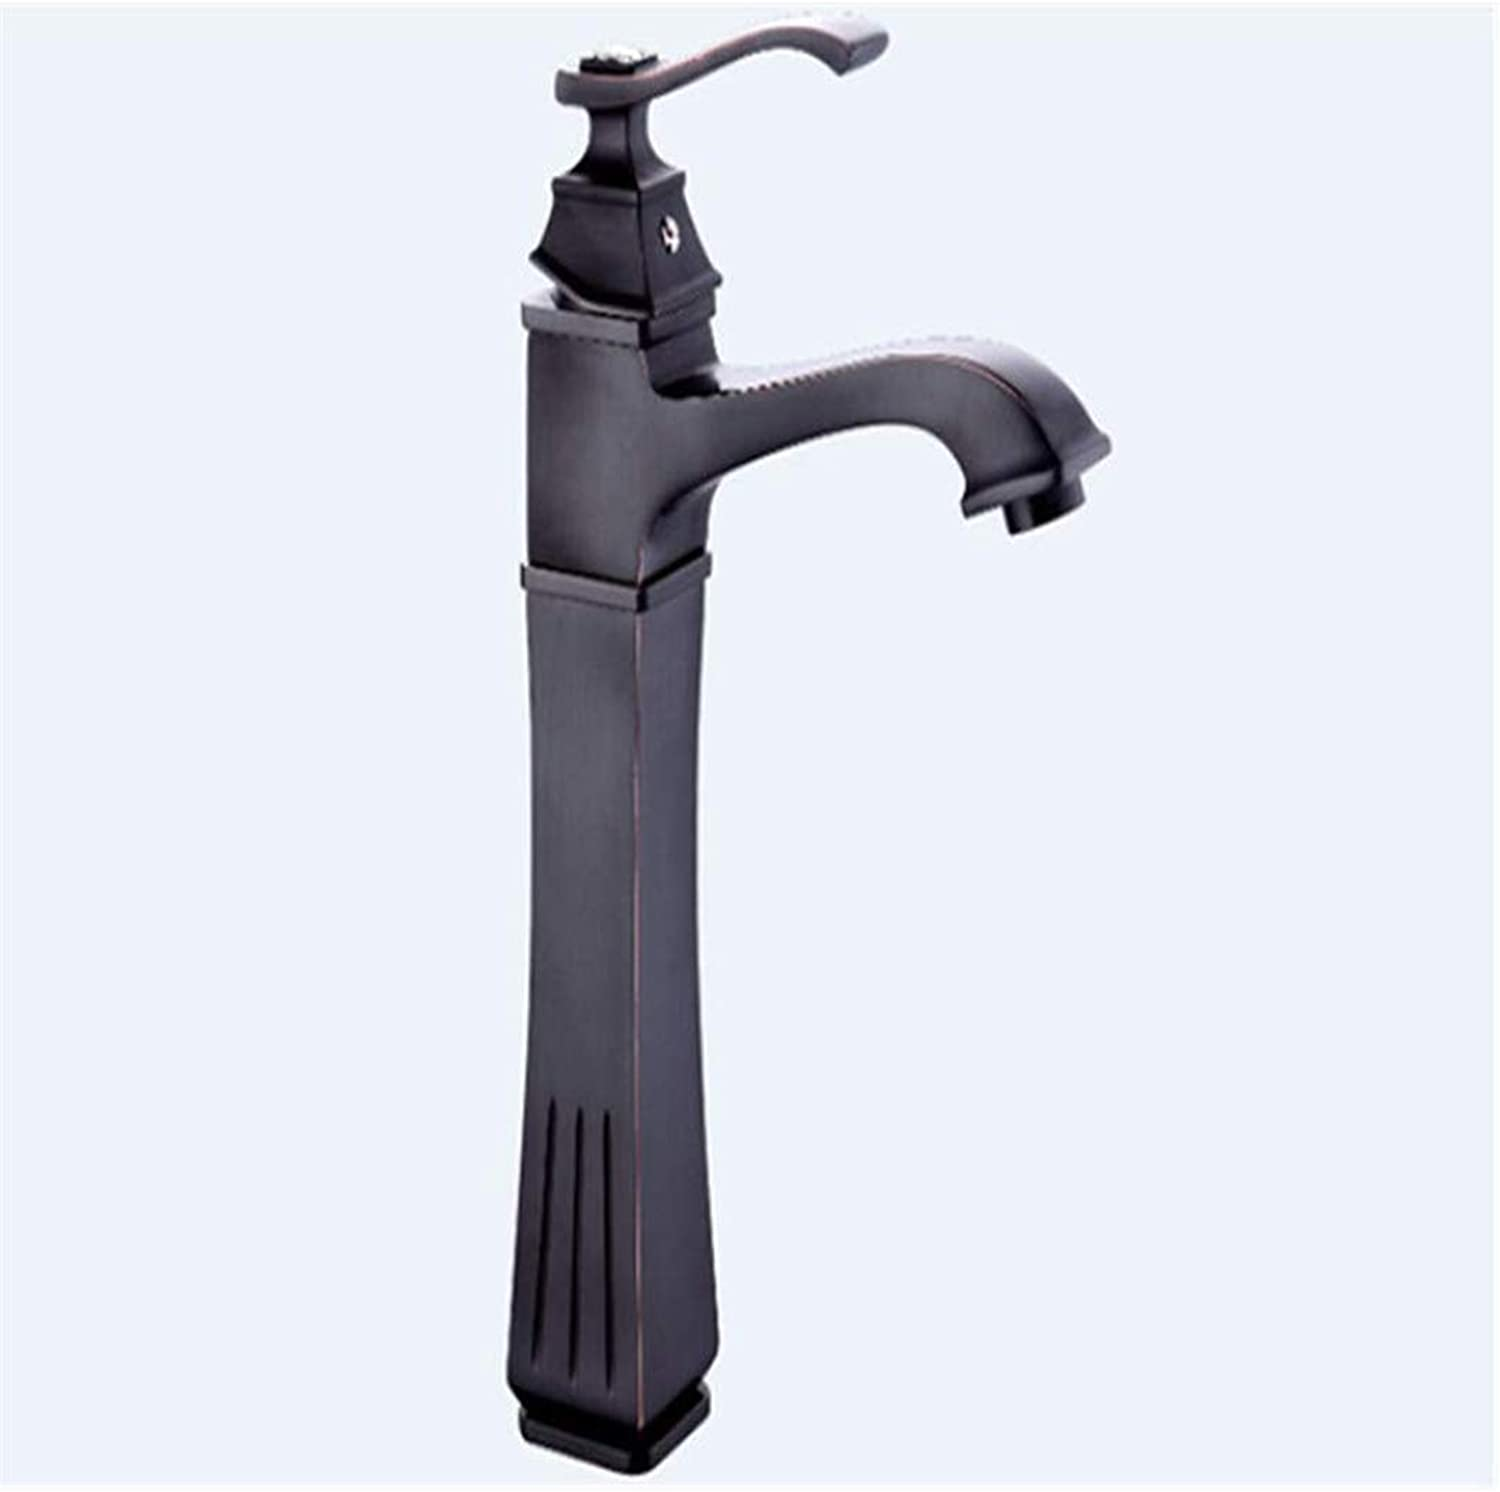 Modern Double Basin Sink Hot and Cold Water Faucet Faucet Basin Faucet Single Hole Mixed Water Hot and Cold Bathroom Kitchen Basin Faucet